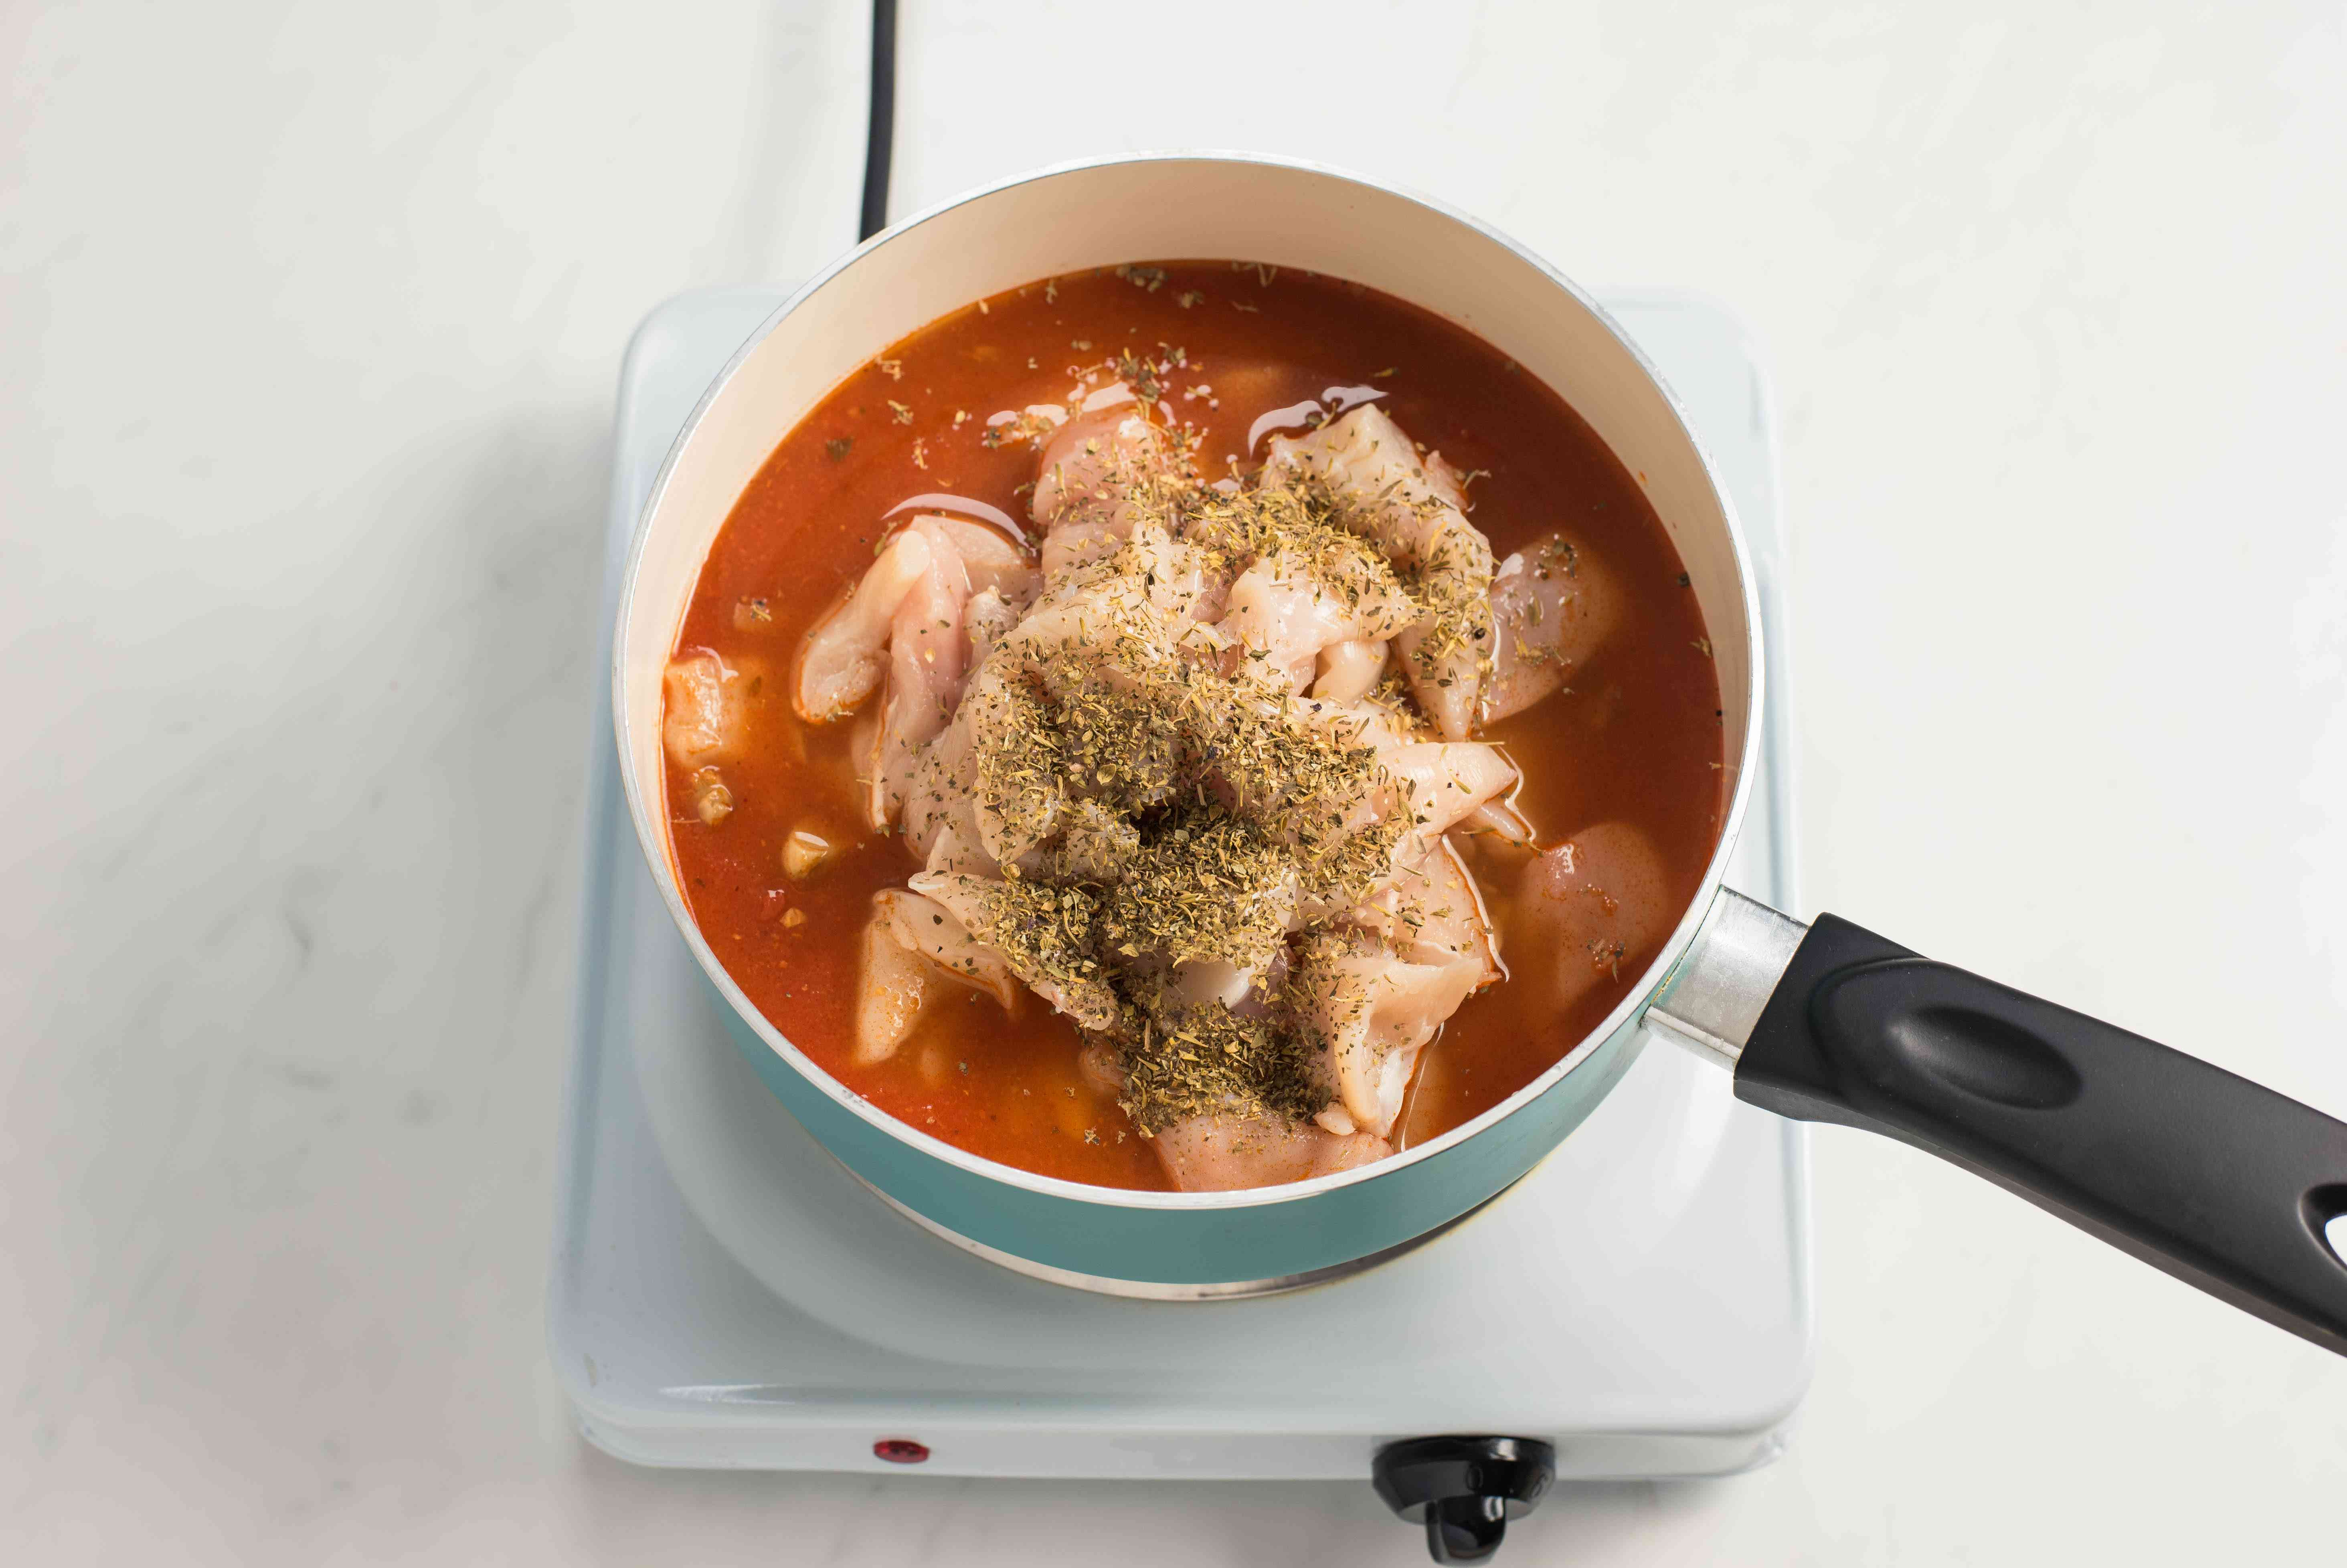 Chicken and sauce in a pot